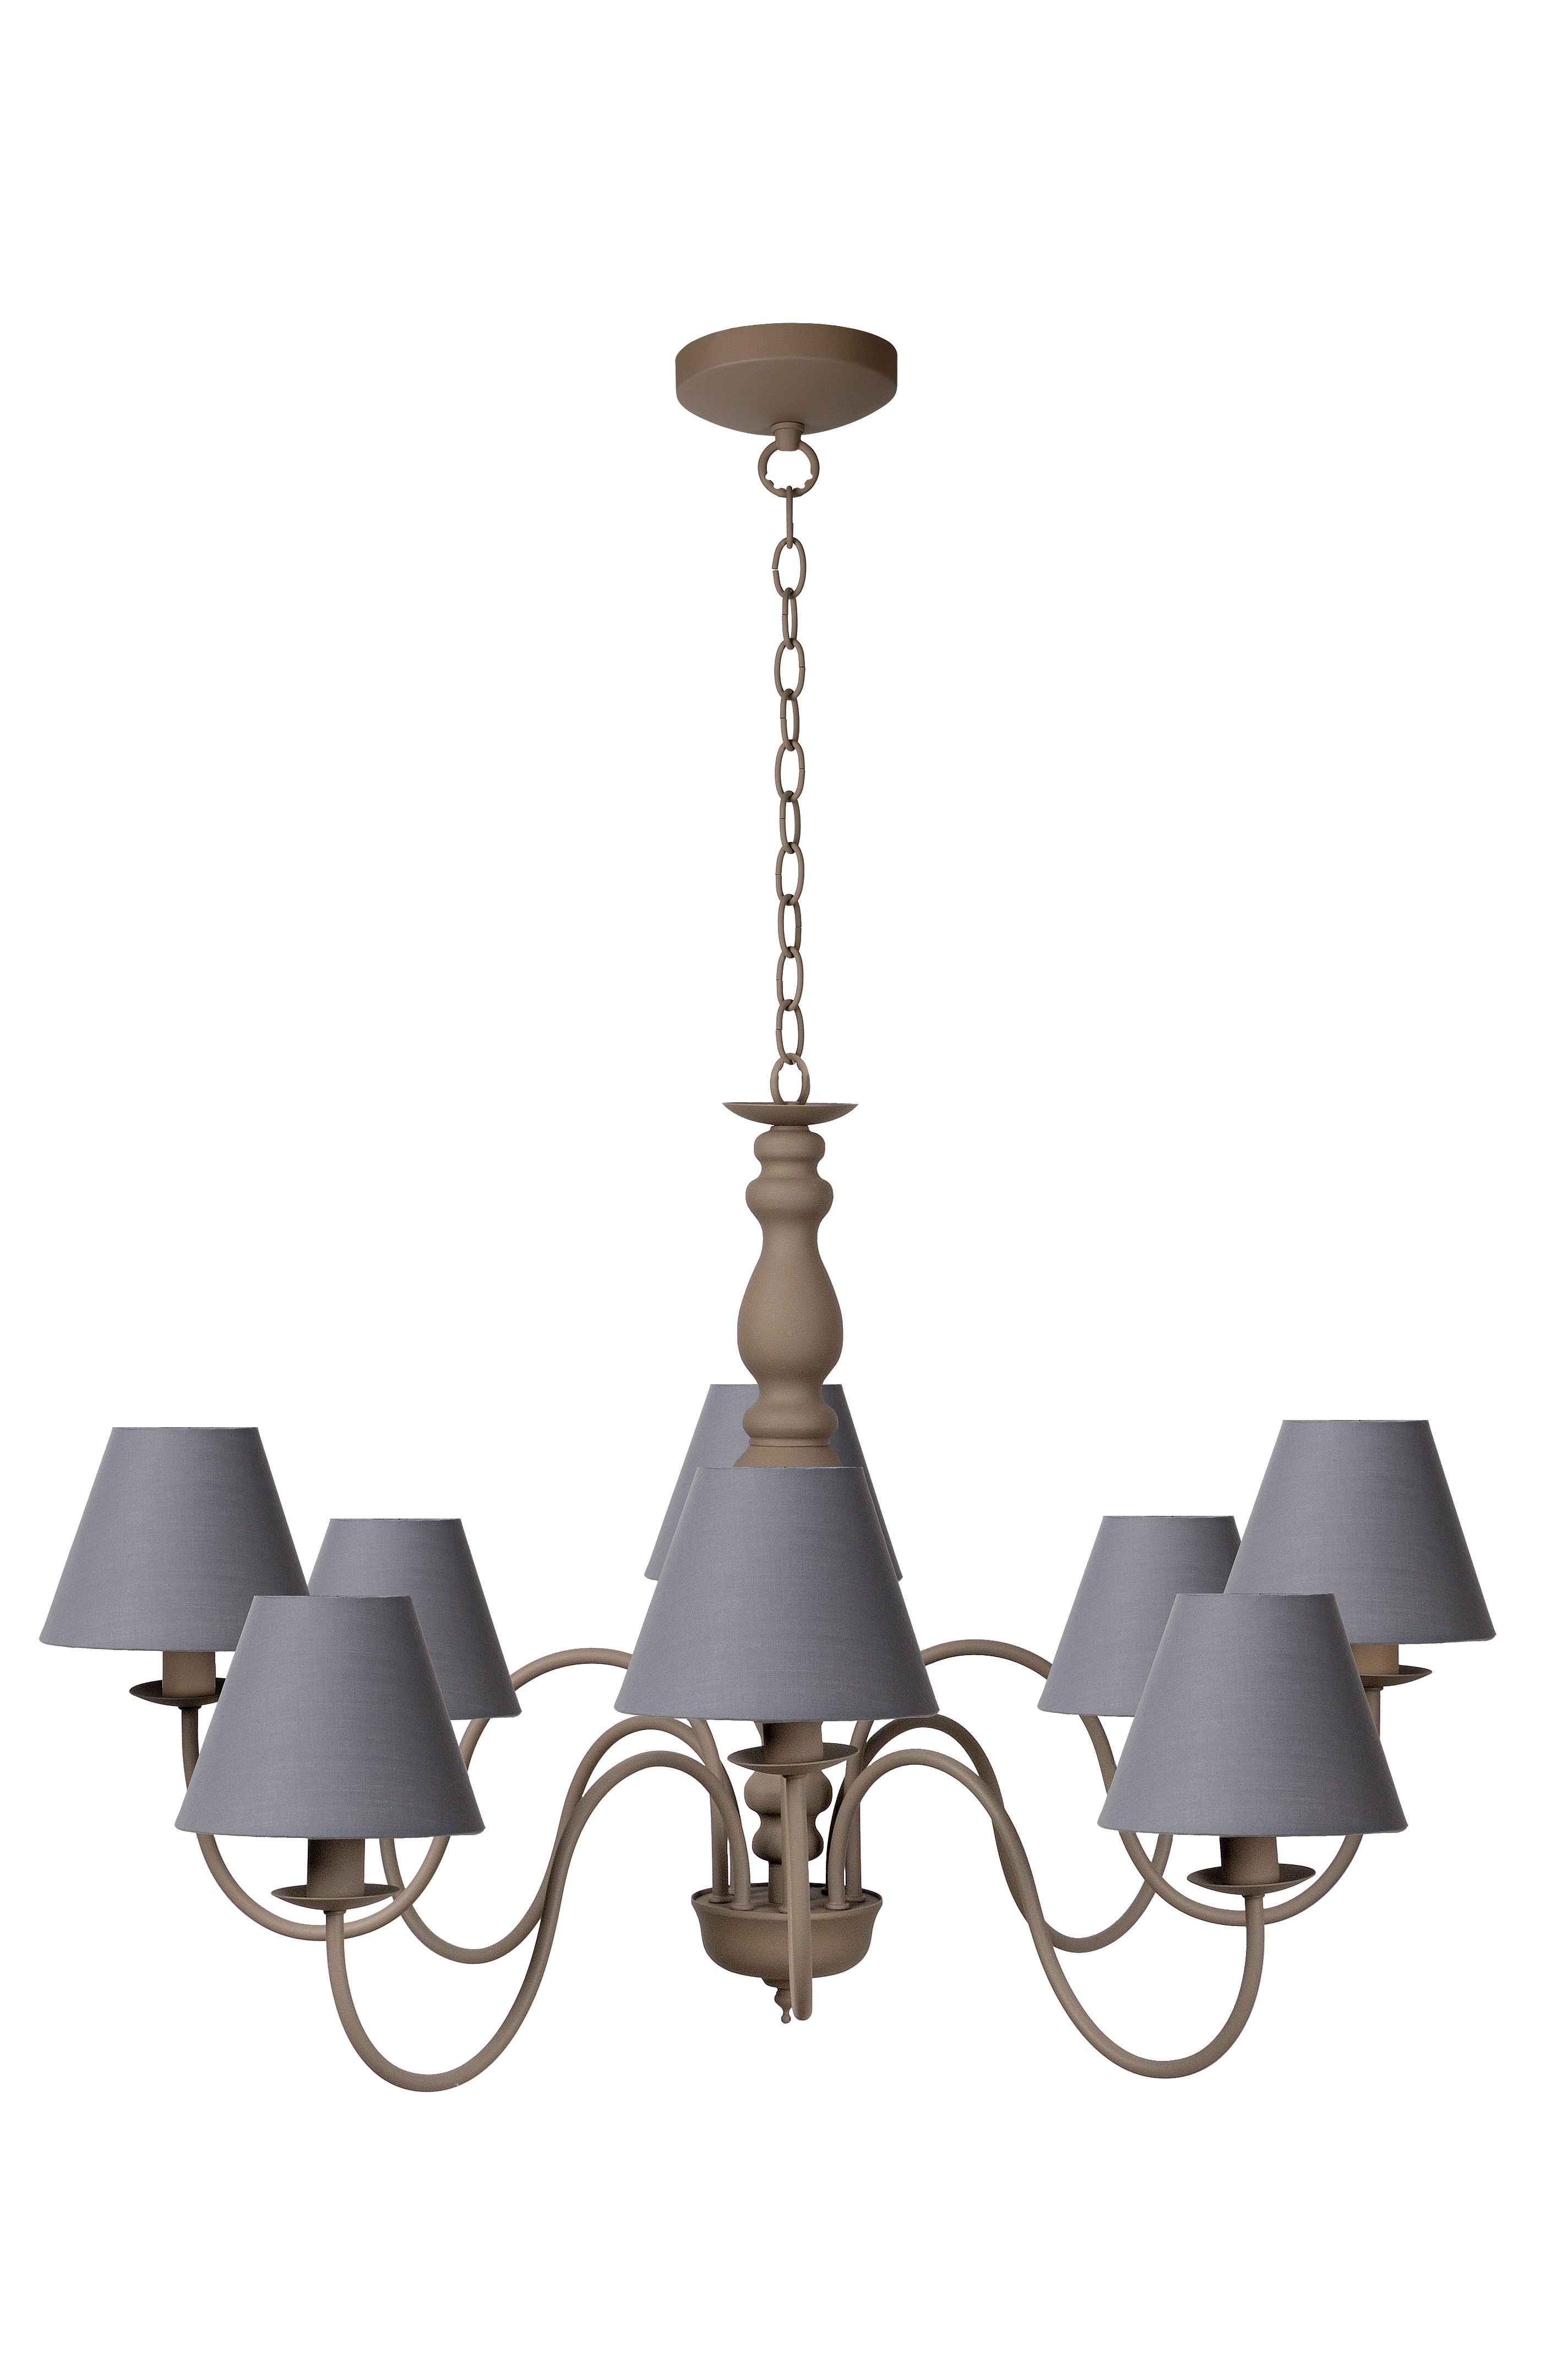 Lucide campagne lustre m taupe - Lustre couleur taupe ...